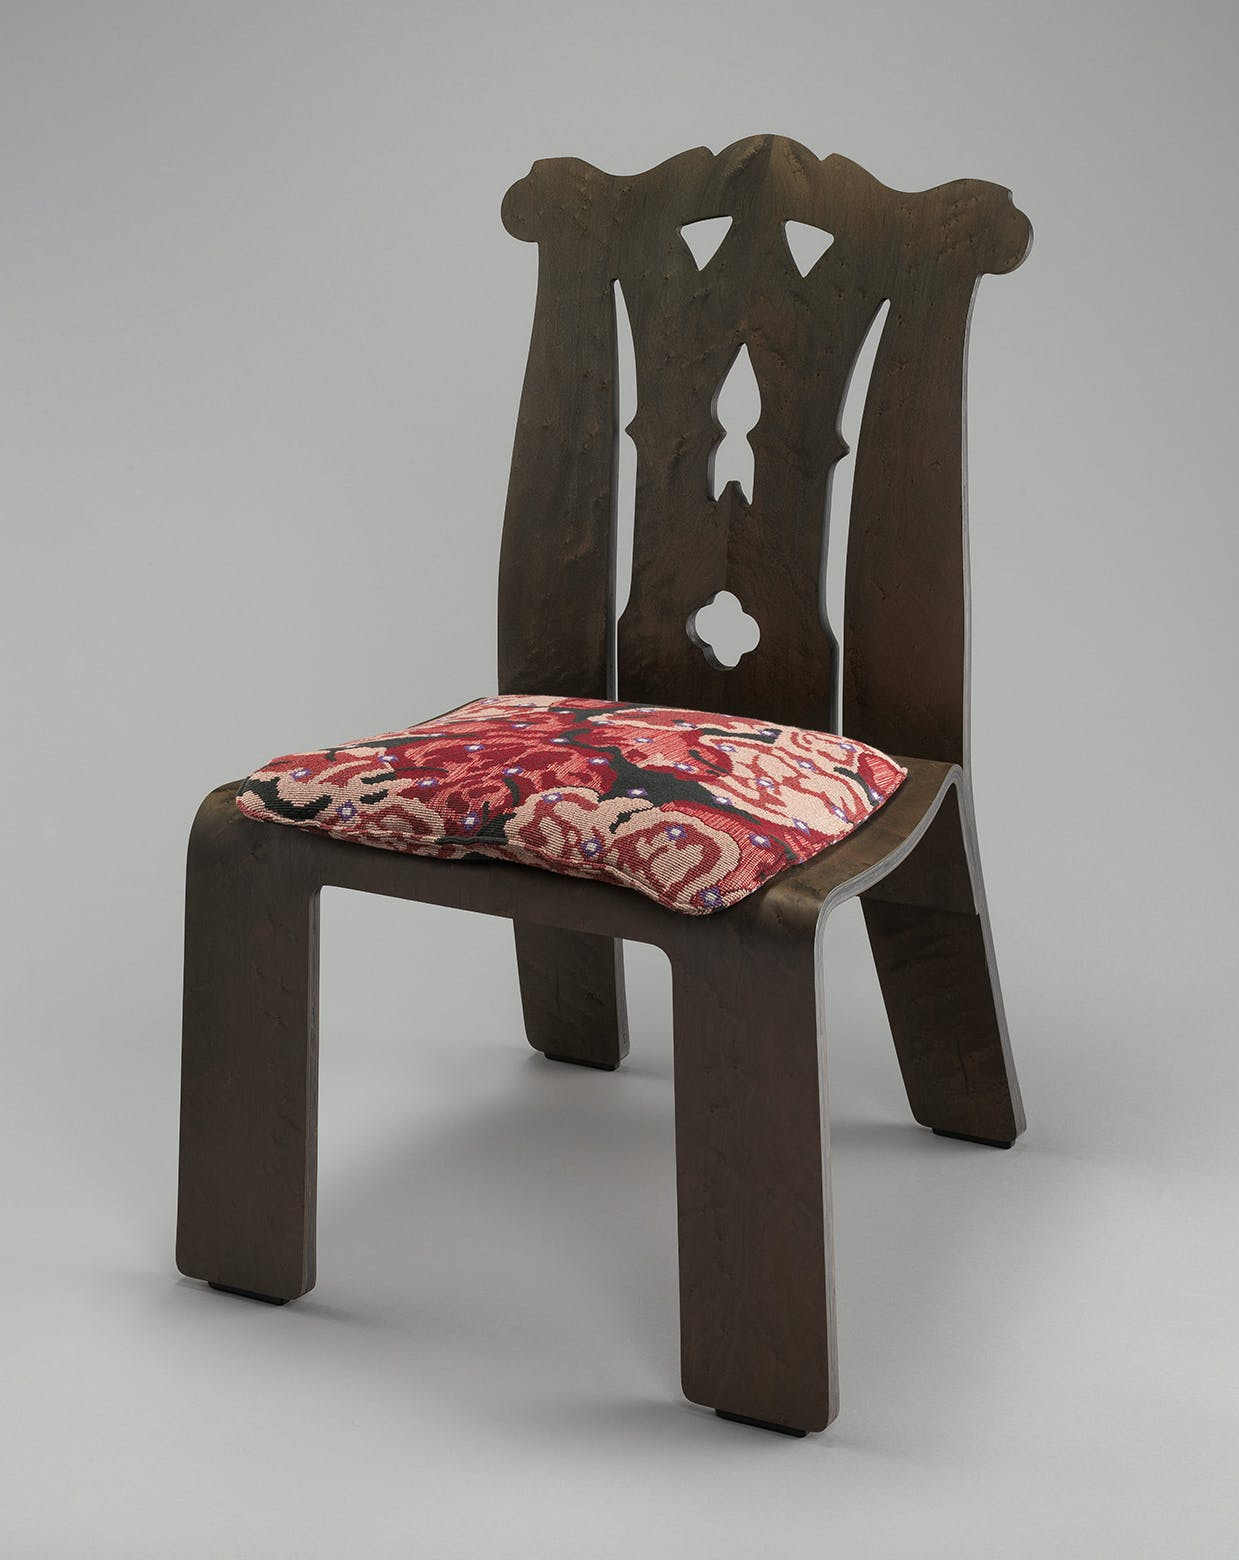 'Chippendale' Chair with 'Tapestry' pattern upholstery, Robert Venturi and Denise Scott Brown